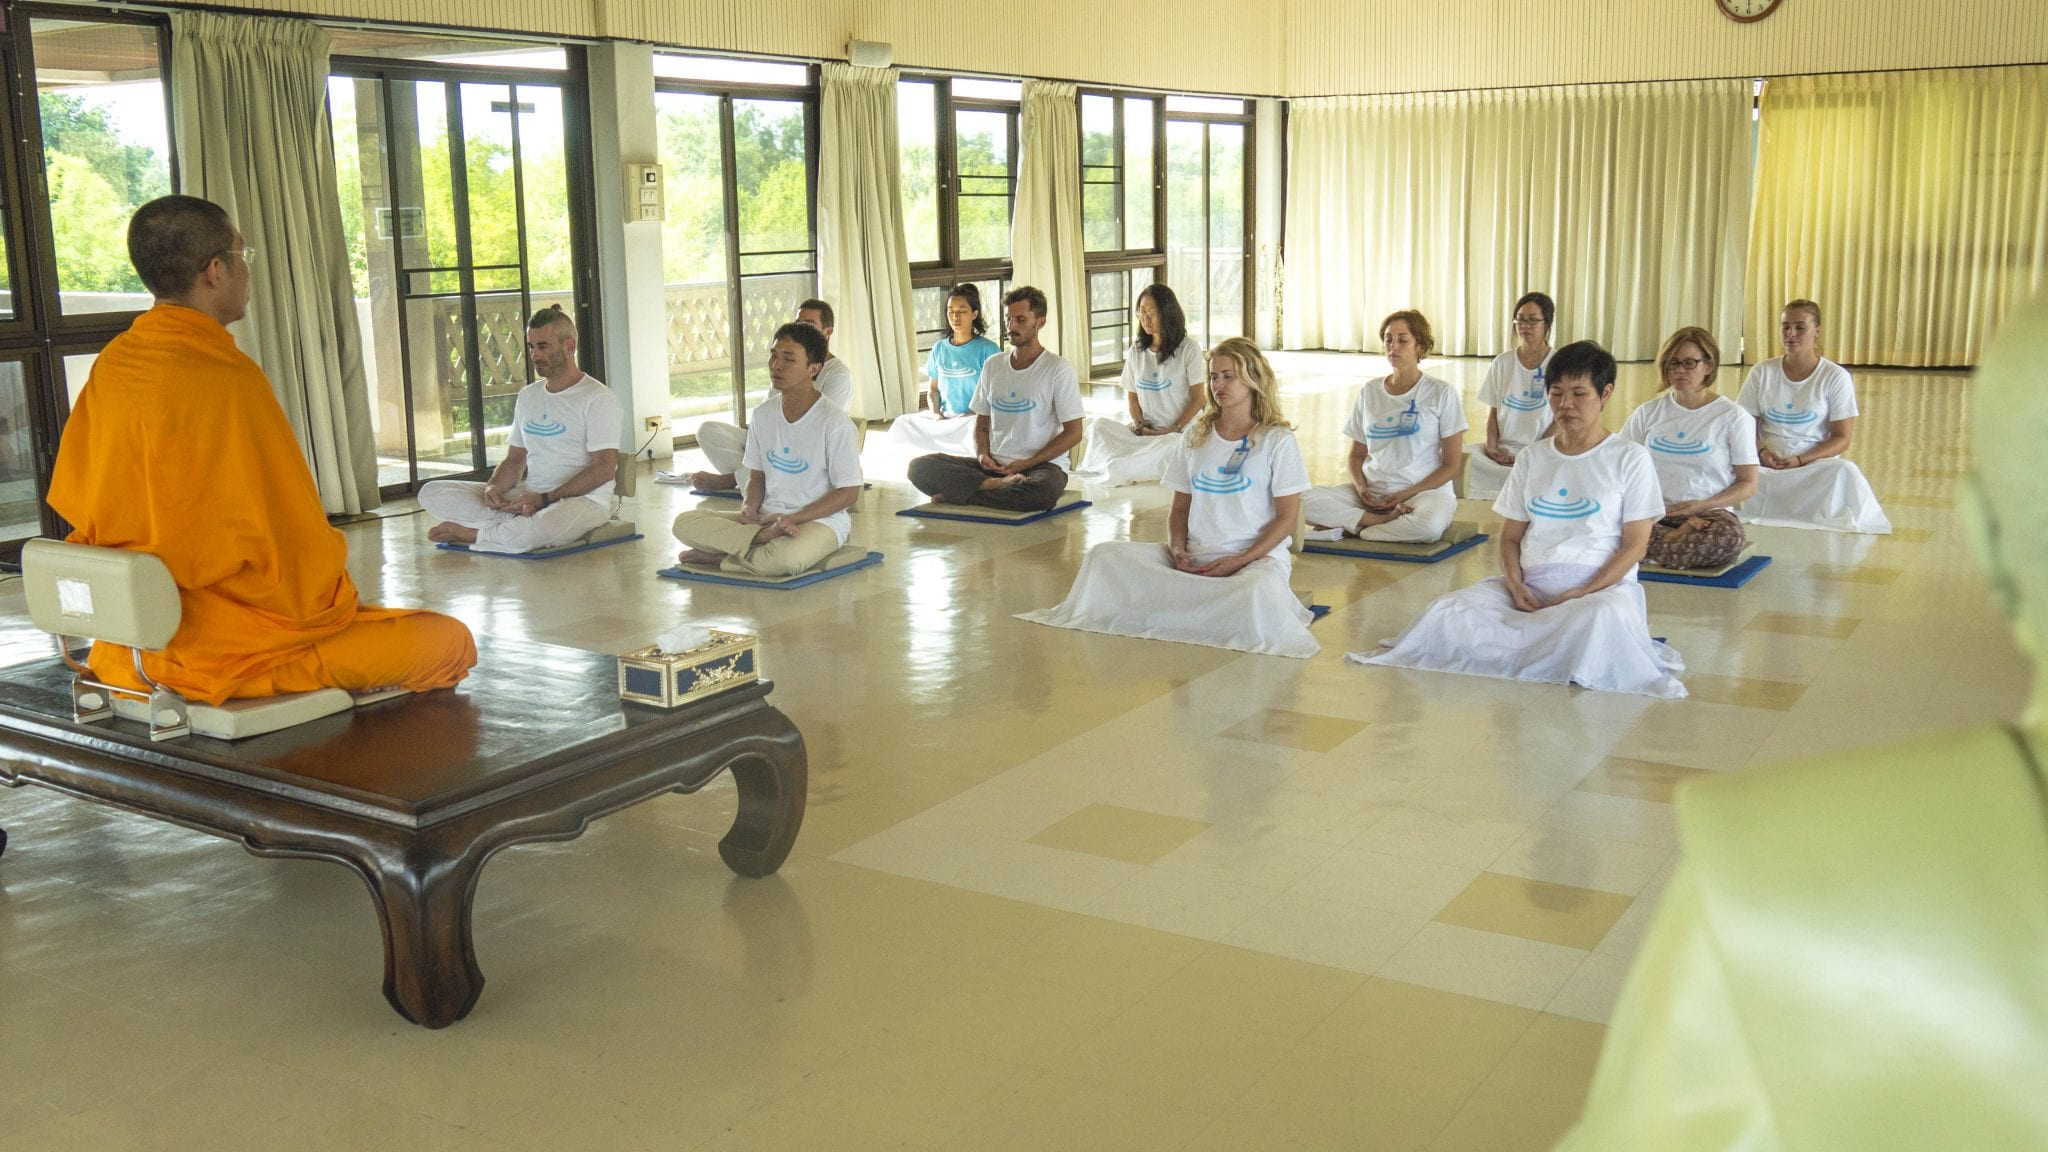 3-Day Retreat Archives - The Middle Way Meditation Institute